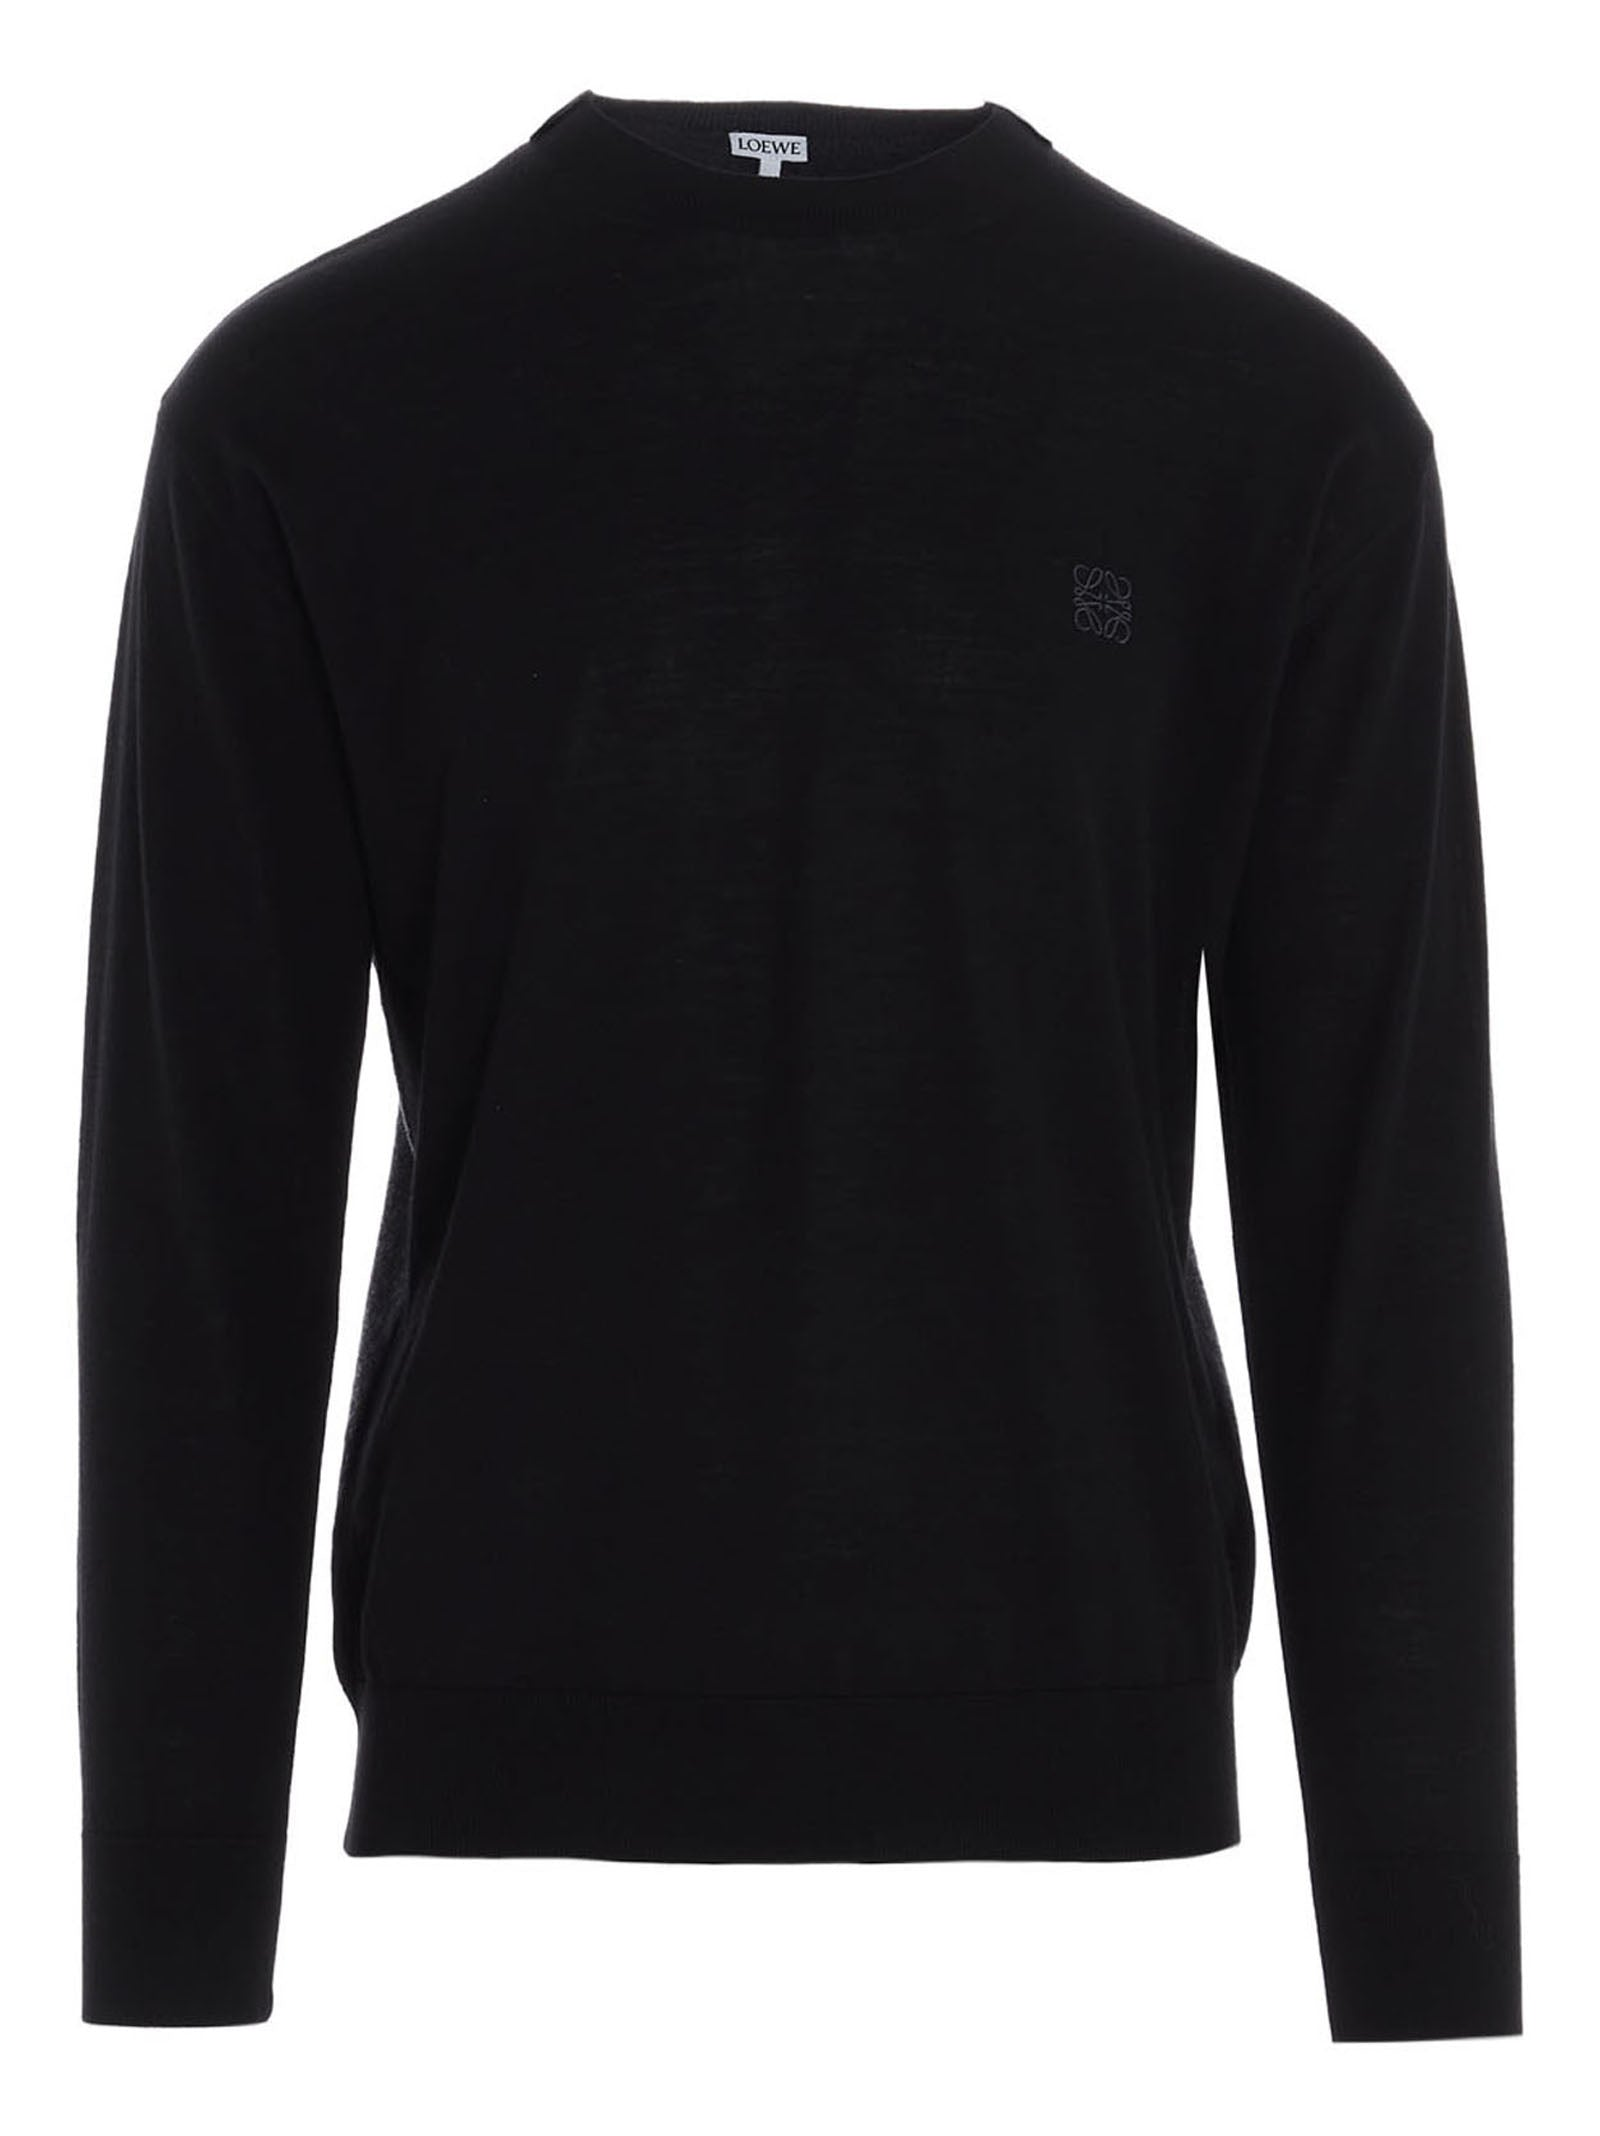 Loewe LOEWE ANAGRAM EMBROIDERED SWEATER